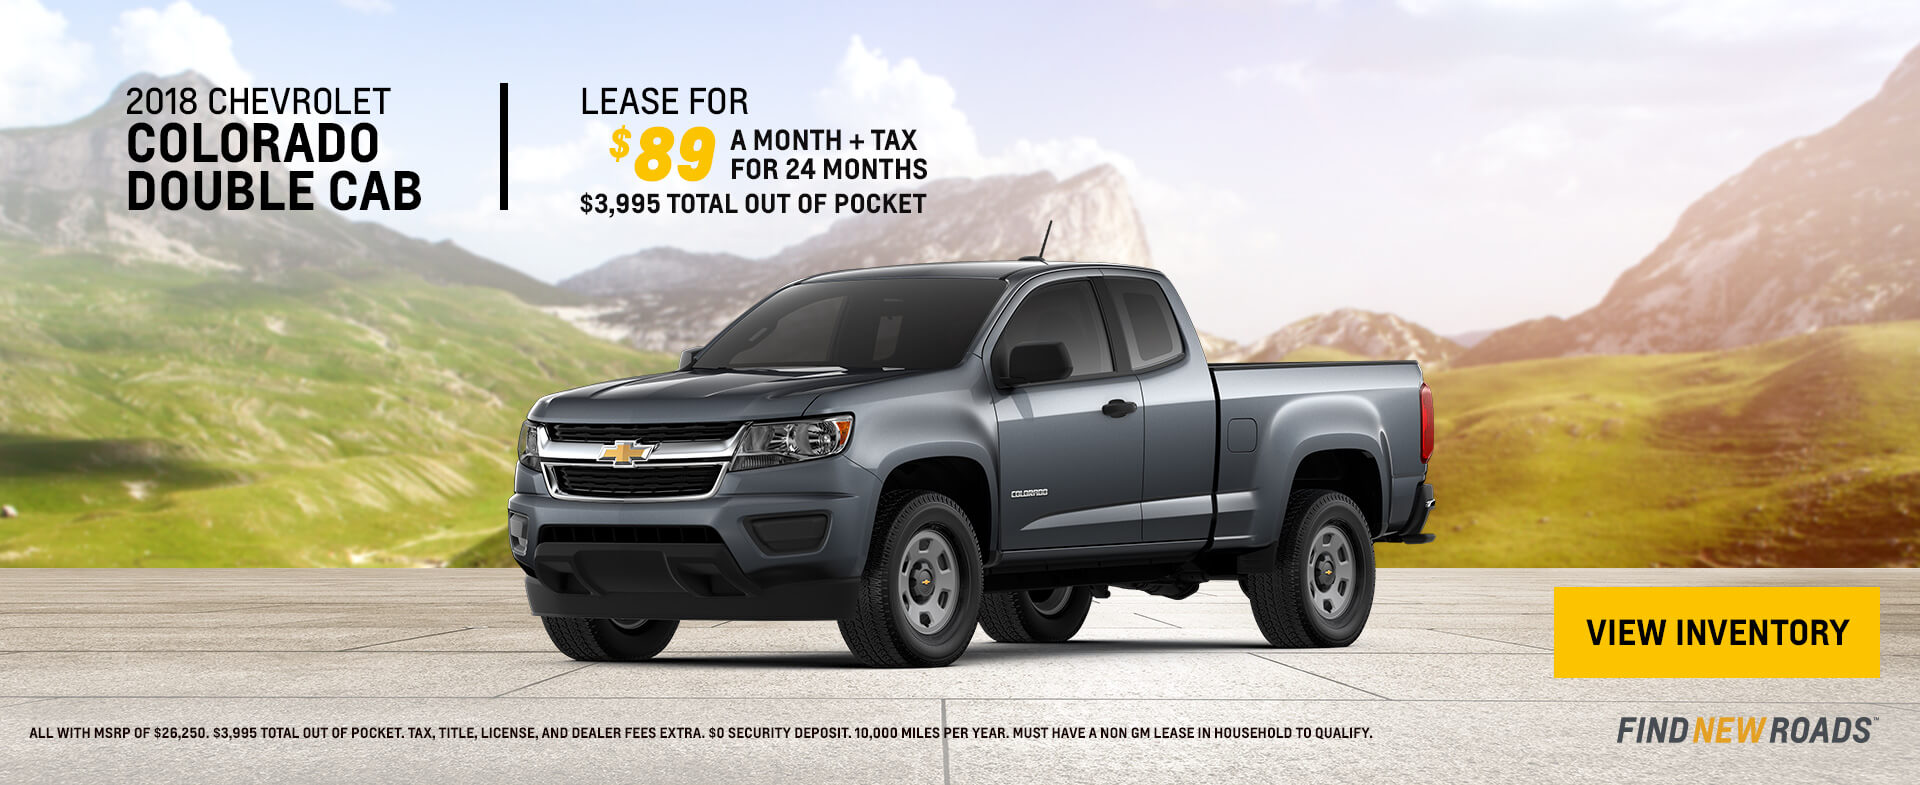 2018 Chevy Colorado $89